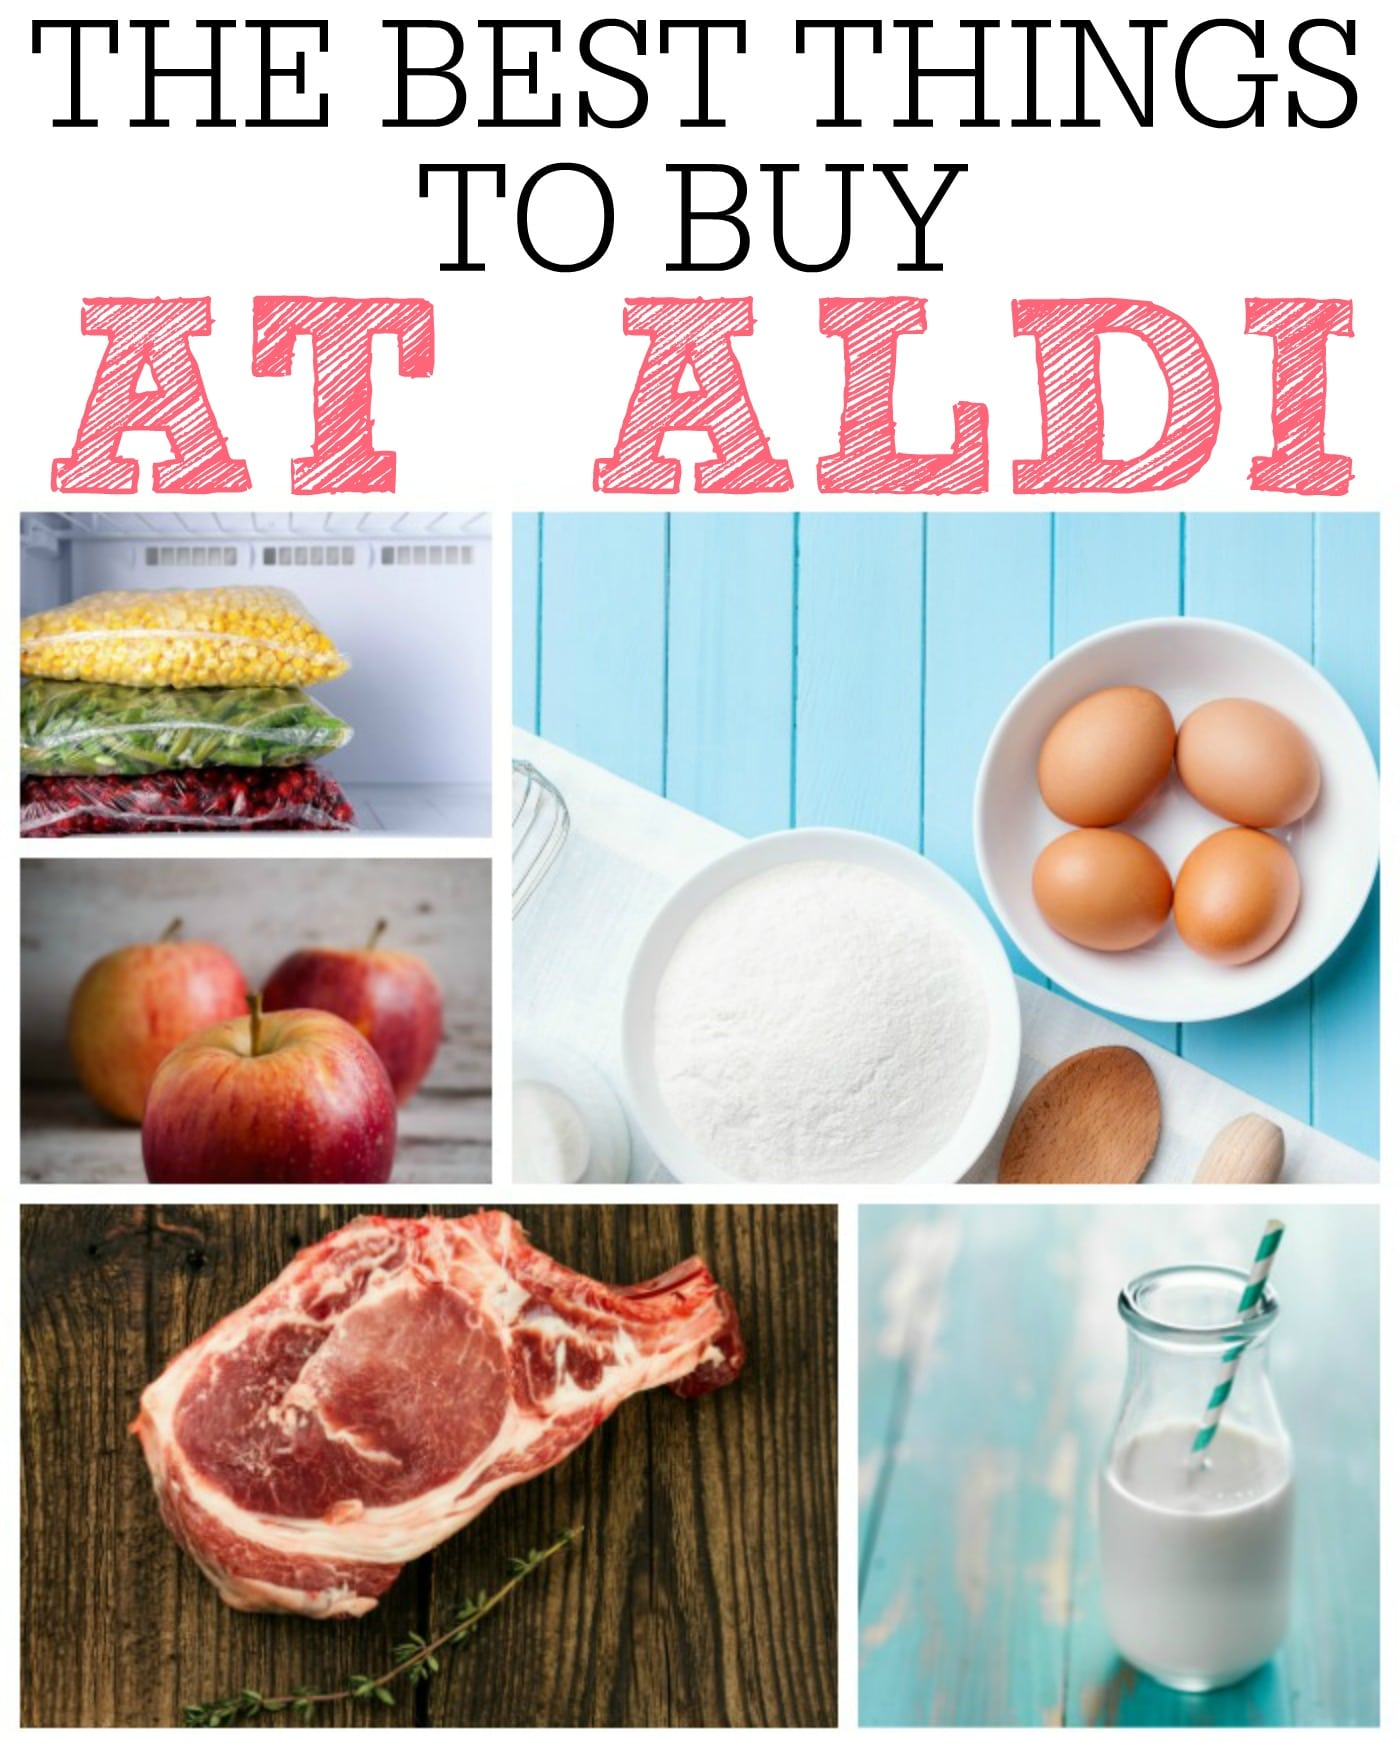 The Best Things to Buy at Aldi - Frugally Blonde